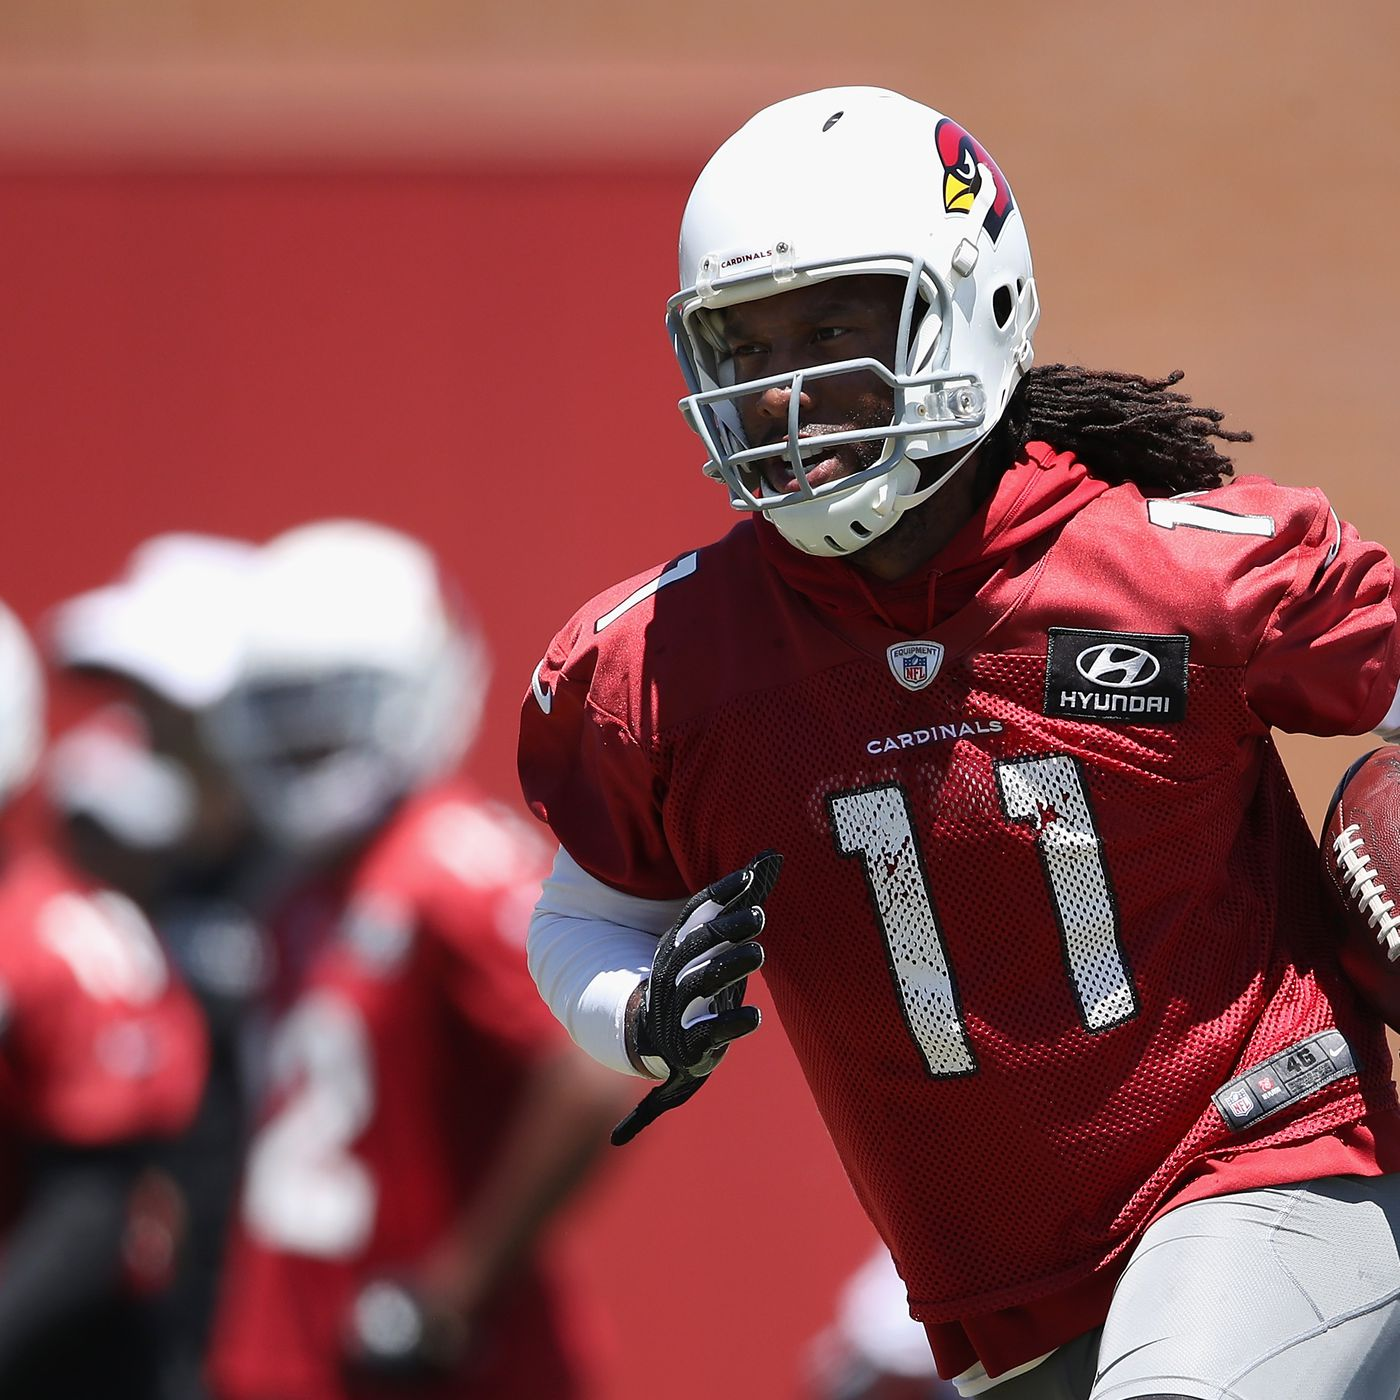 low priced 1a7cc 7e6f1 Larry Fitzgerald ranked 60th in NFL Top 100 - Cardiac Hill